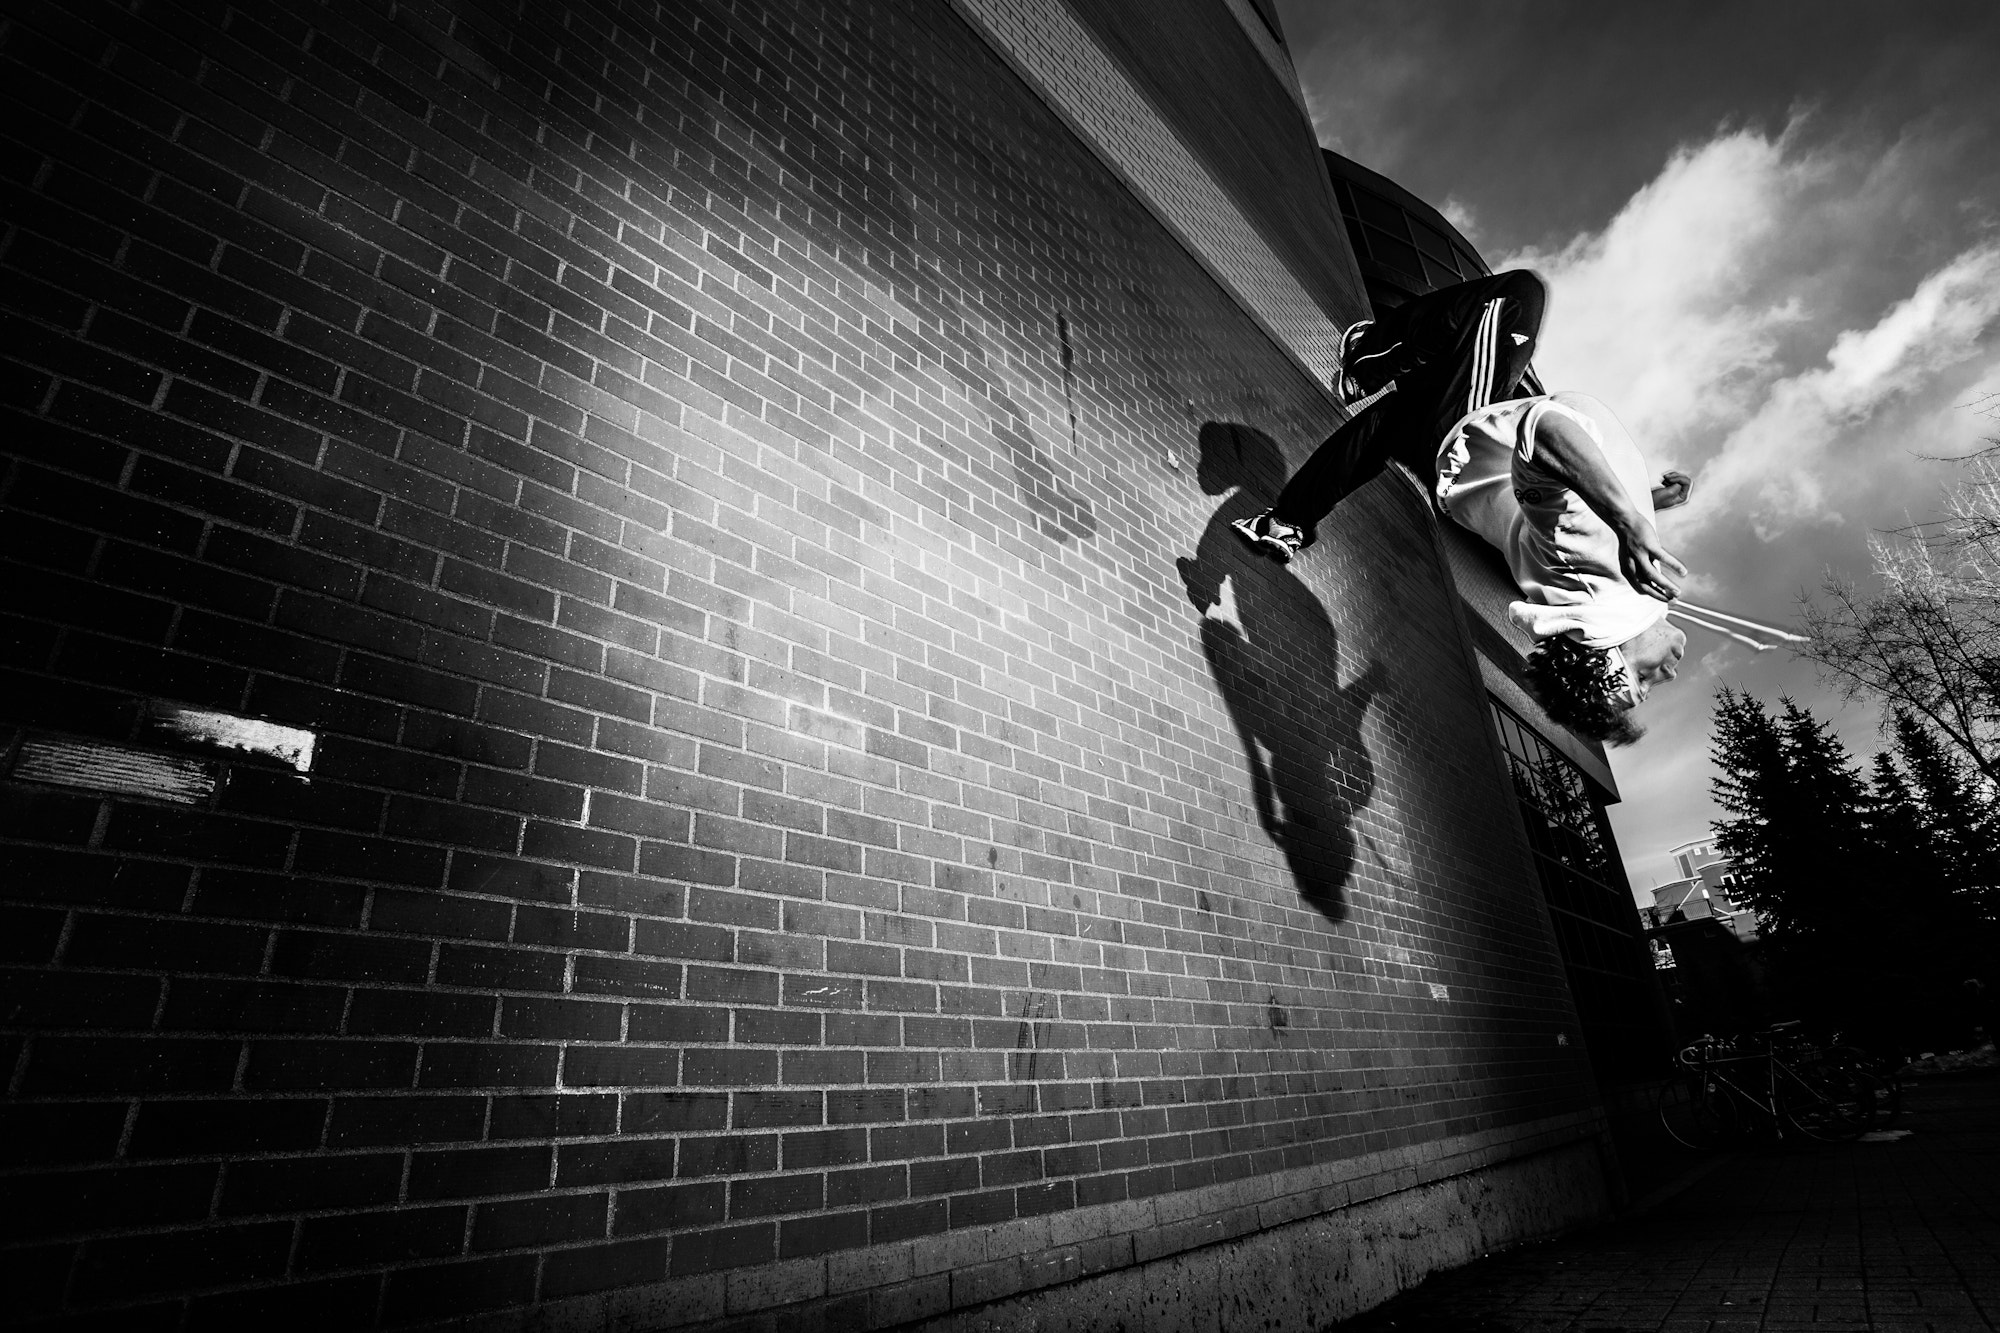 Photograph Parkour by Jonathan Coe on 500px